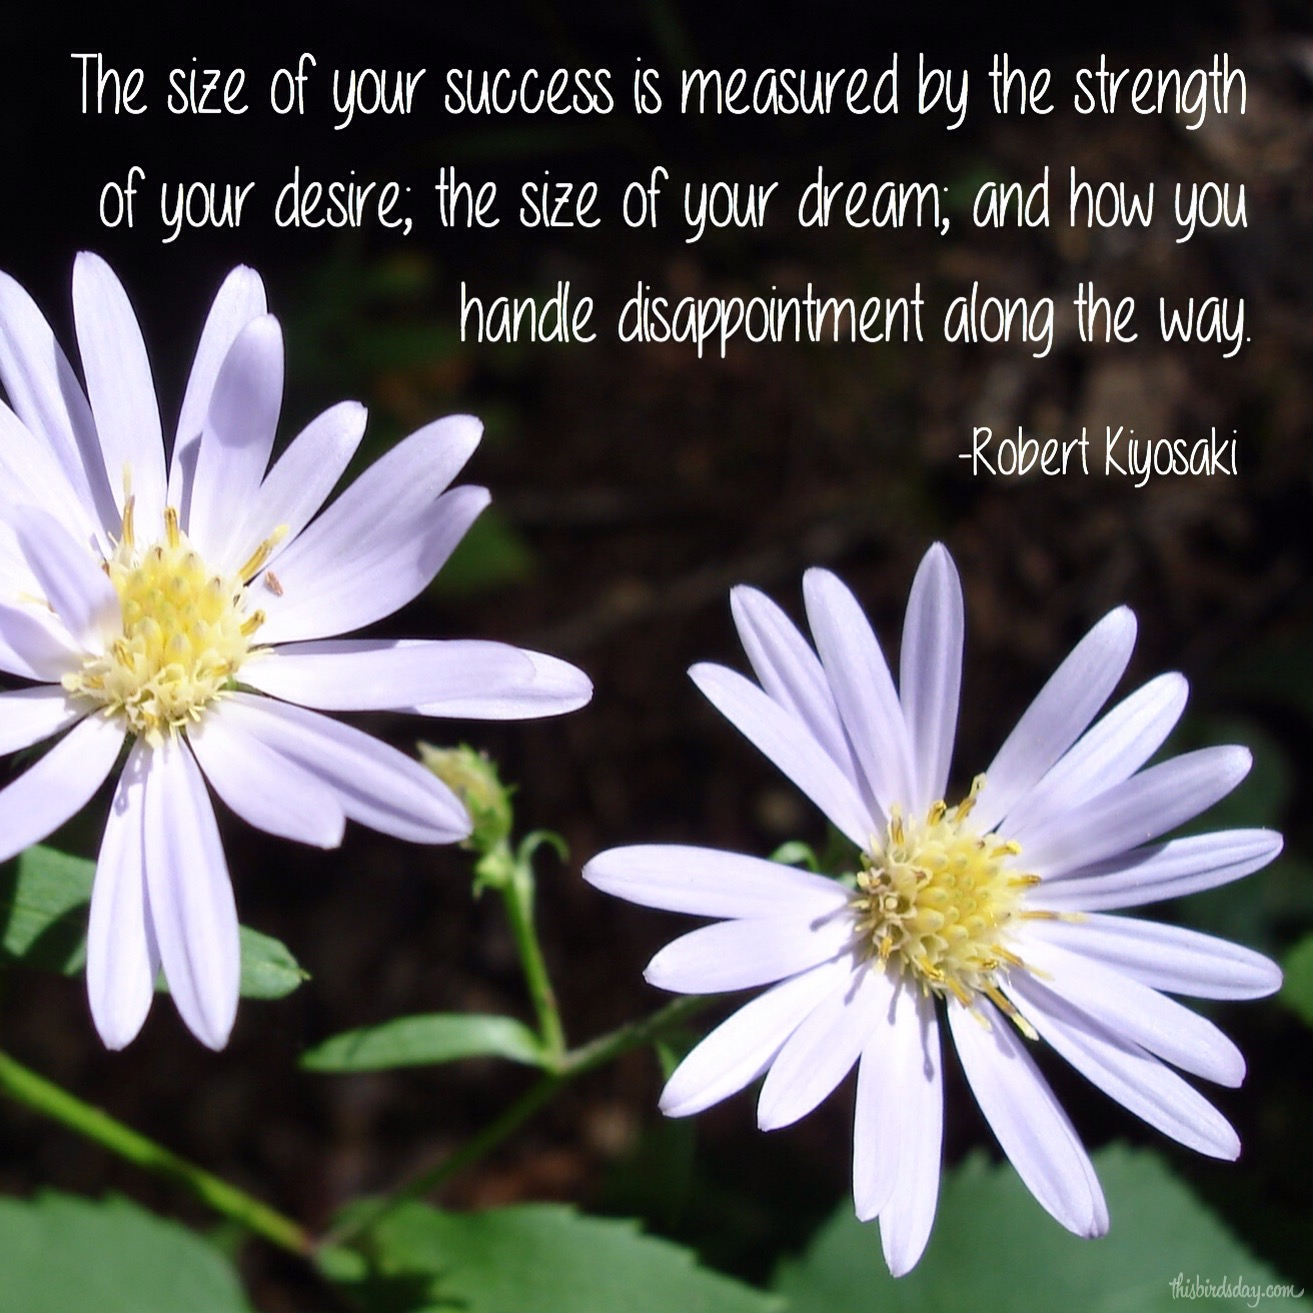 """""""The size of your success is measured by the strength of your desire, the size of your dream, and how you handle disappointment along the way."""" Robert Kiyosaki Photo copyright Sheri Landry"""